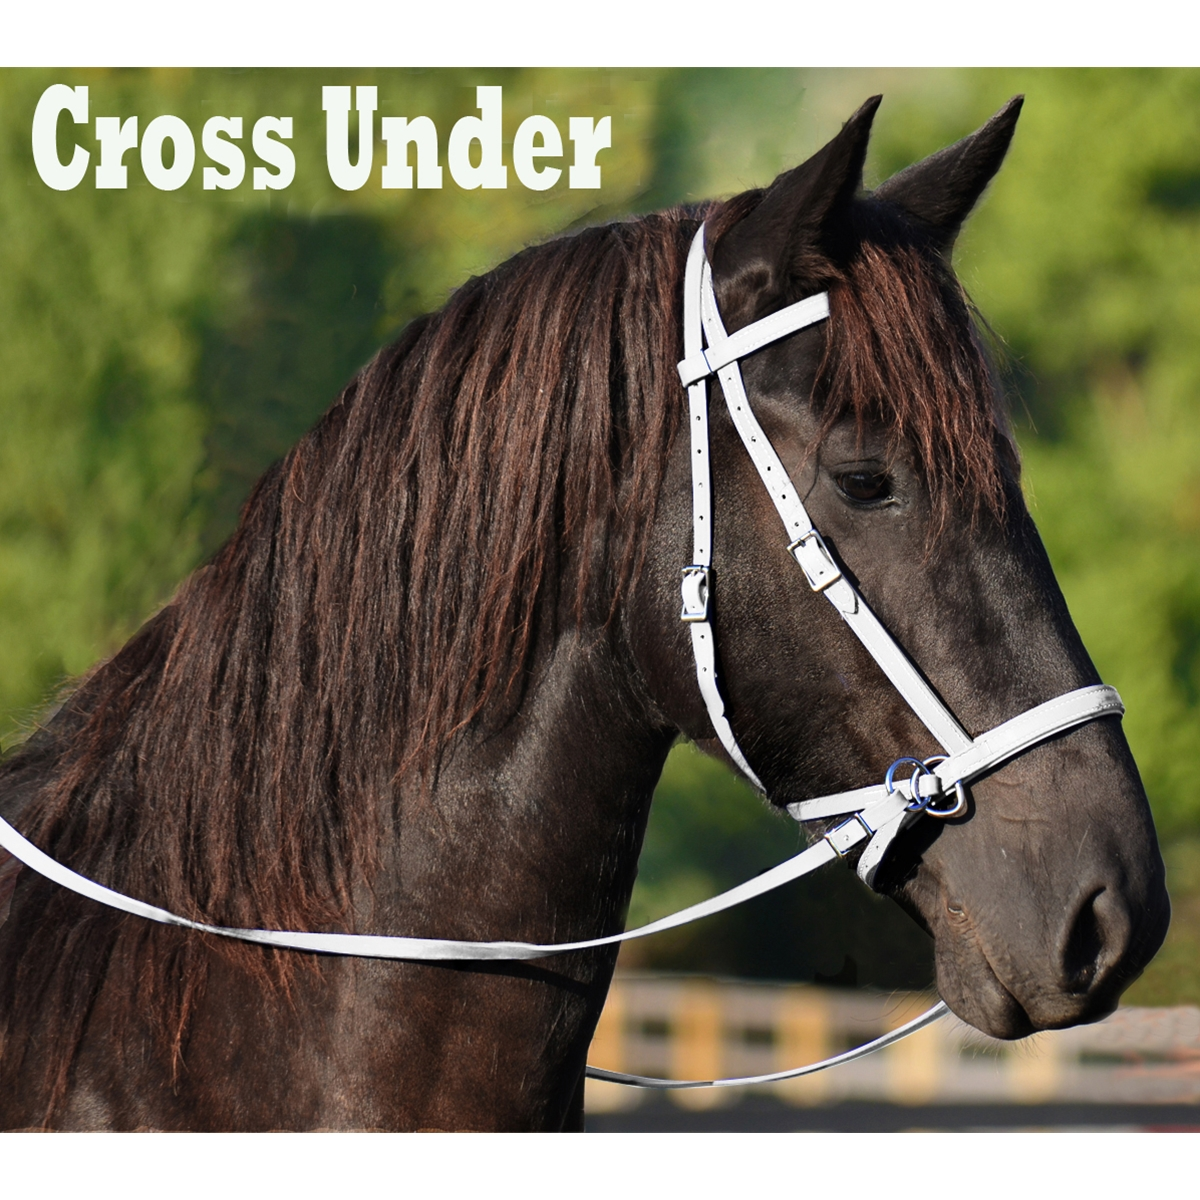 WHITE 2 in 1 BITLESS BRIDLE made from BETA BIOTHANE